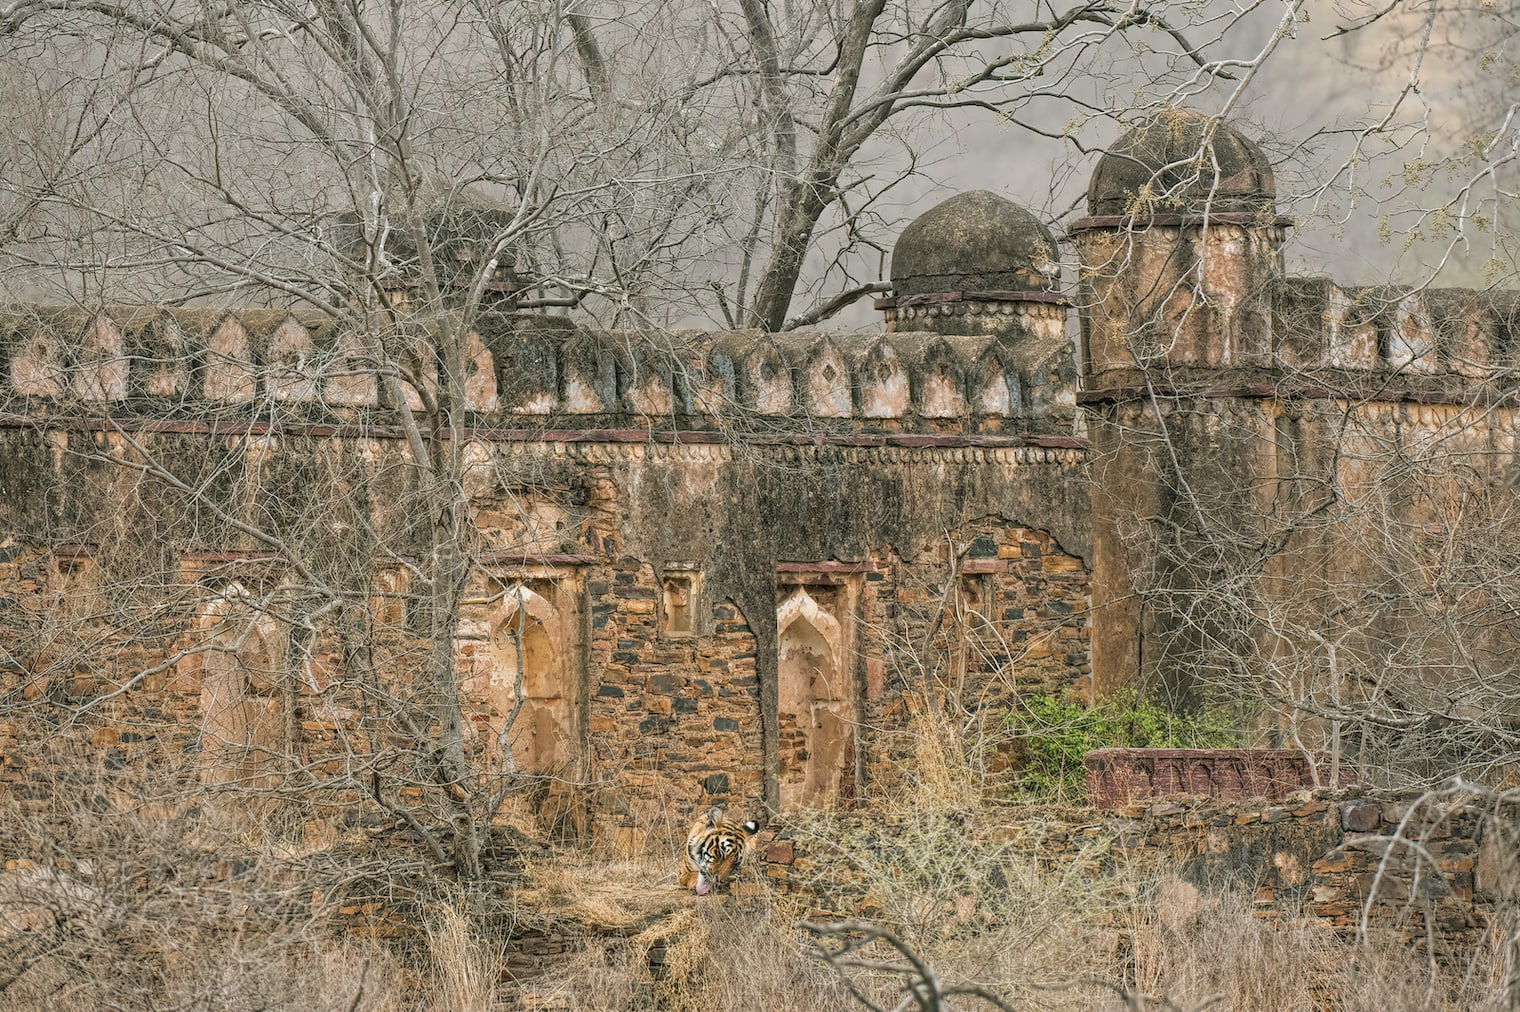 This masjid (mosque) along the Padam Talao with its onion domed slender minarets at the end of thick stone walls, large vaulted gateways opening into a big courtyard is a classic example of Ranthambore's Indo-Islamic architecture. This one is definitely one of my favourite buildings in Ranthambore. This mosque is in an area that has a very high density of ungulates, so tigers frequently hunt in this area, using the cover provided by the building to get close to their prey.